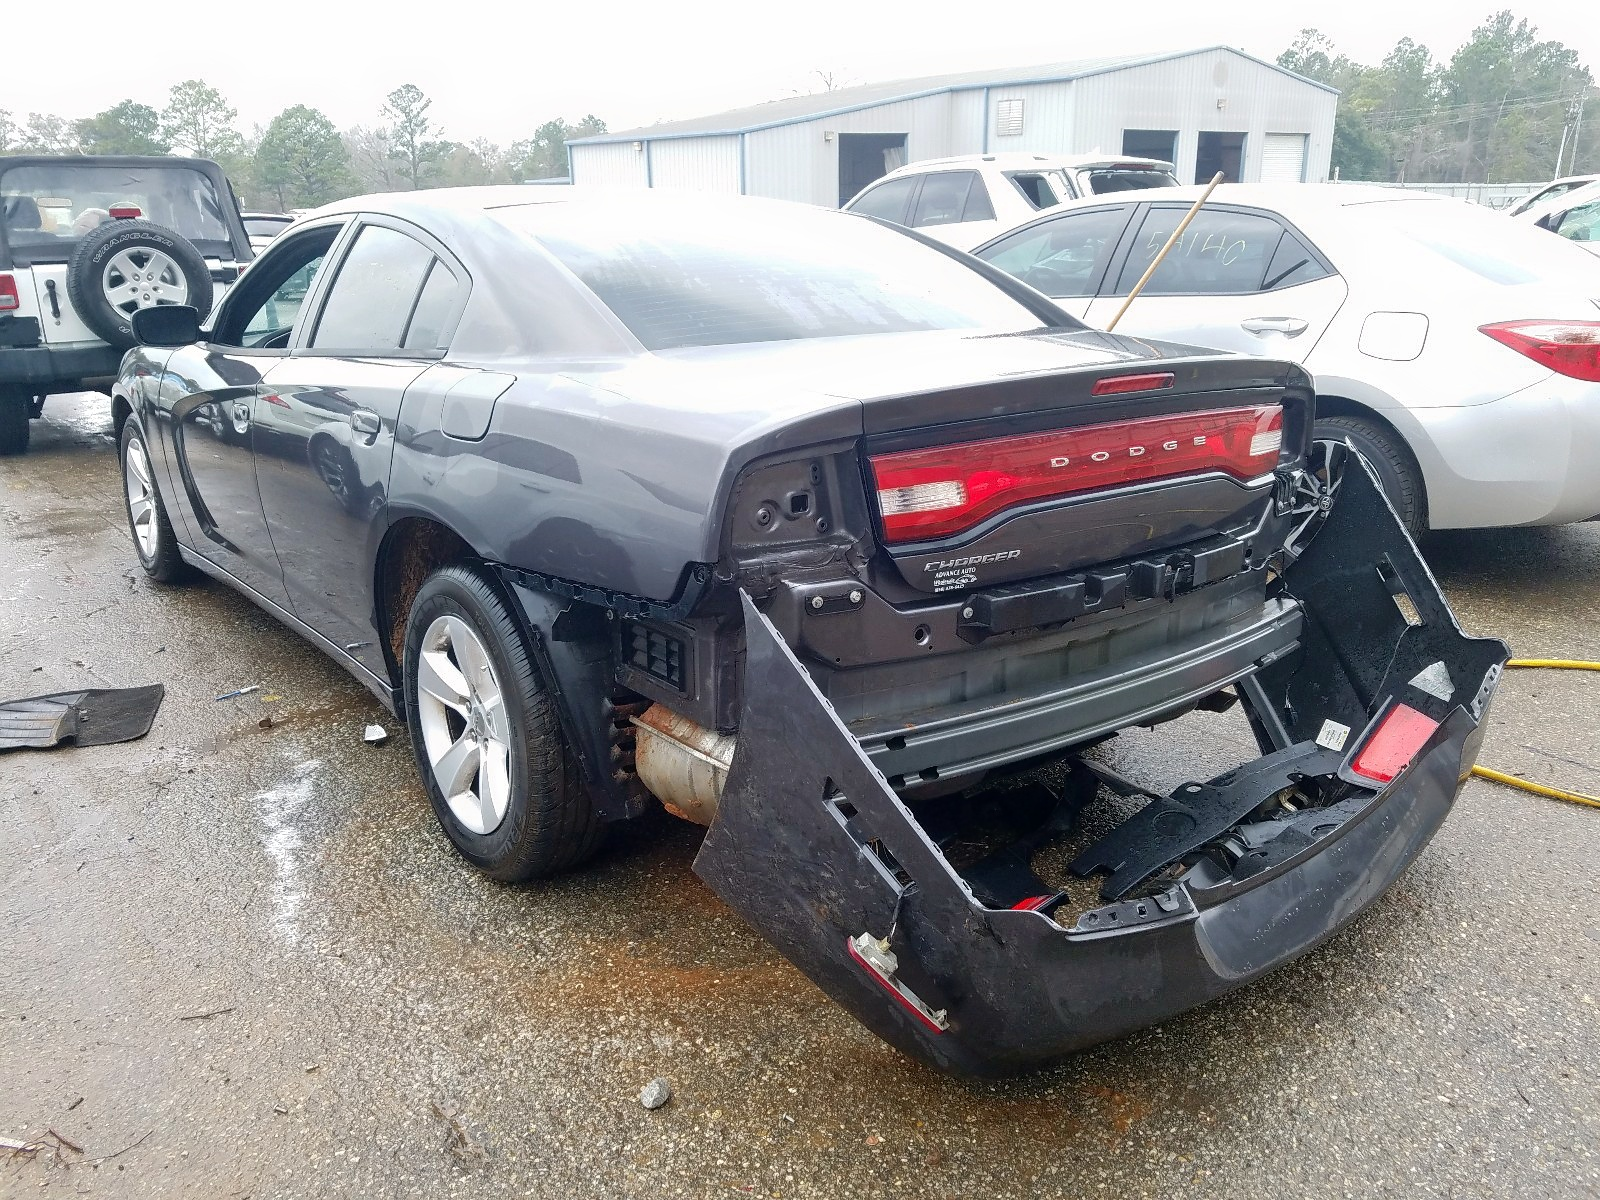 2C3CDXBG7EH130837 - 2014 Dodge Charger Se 3.6L [Angle] View